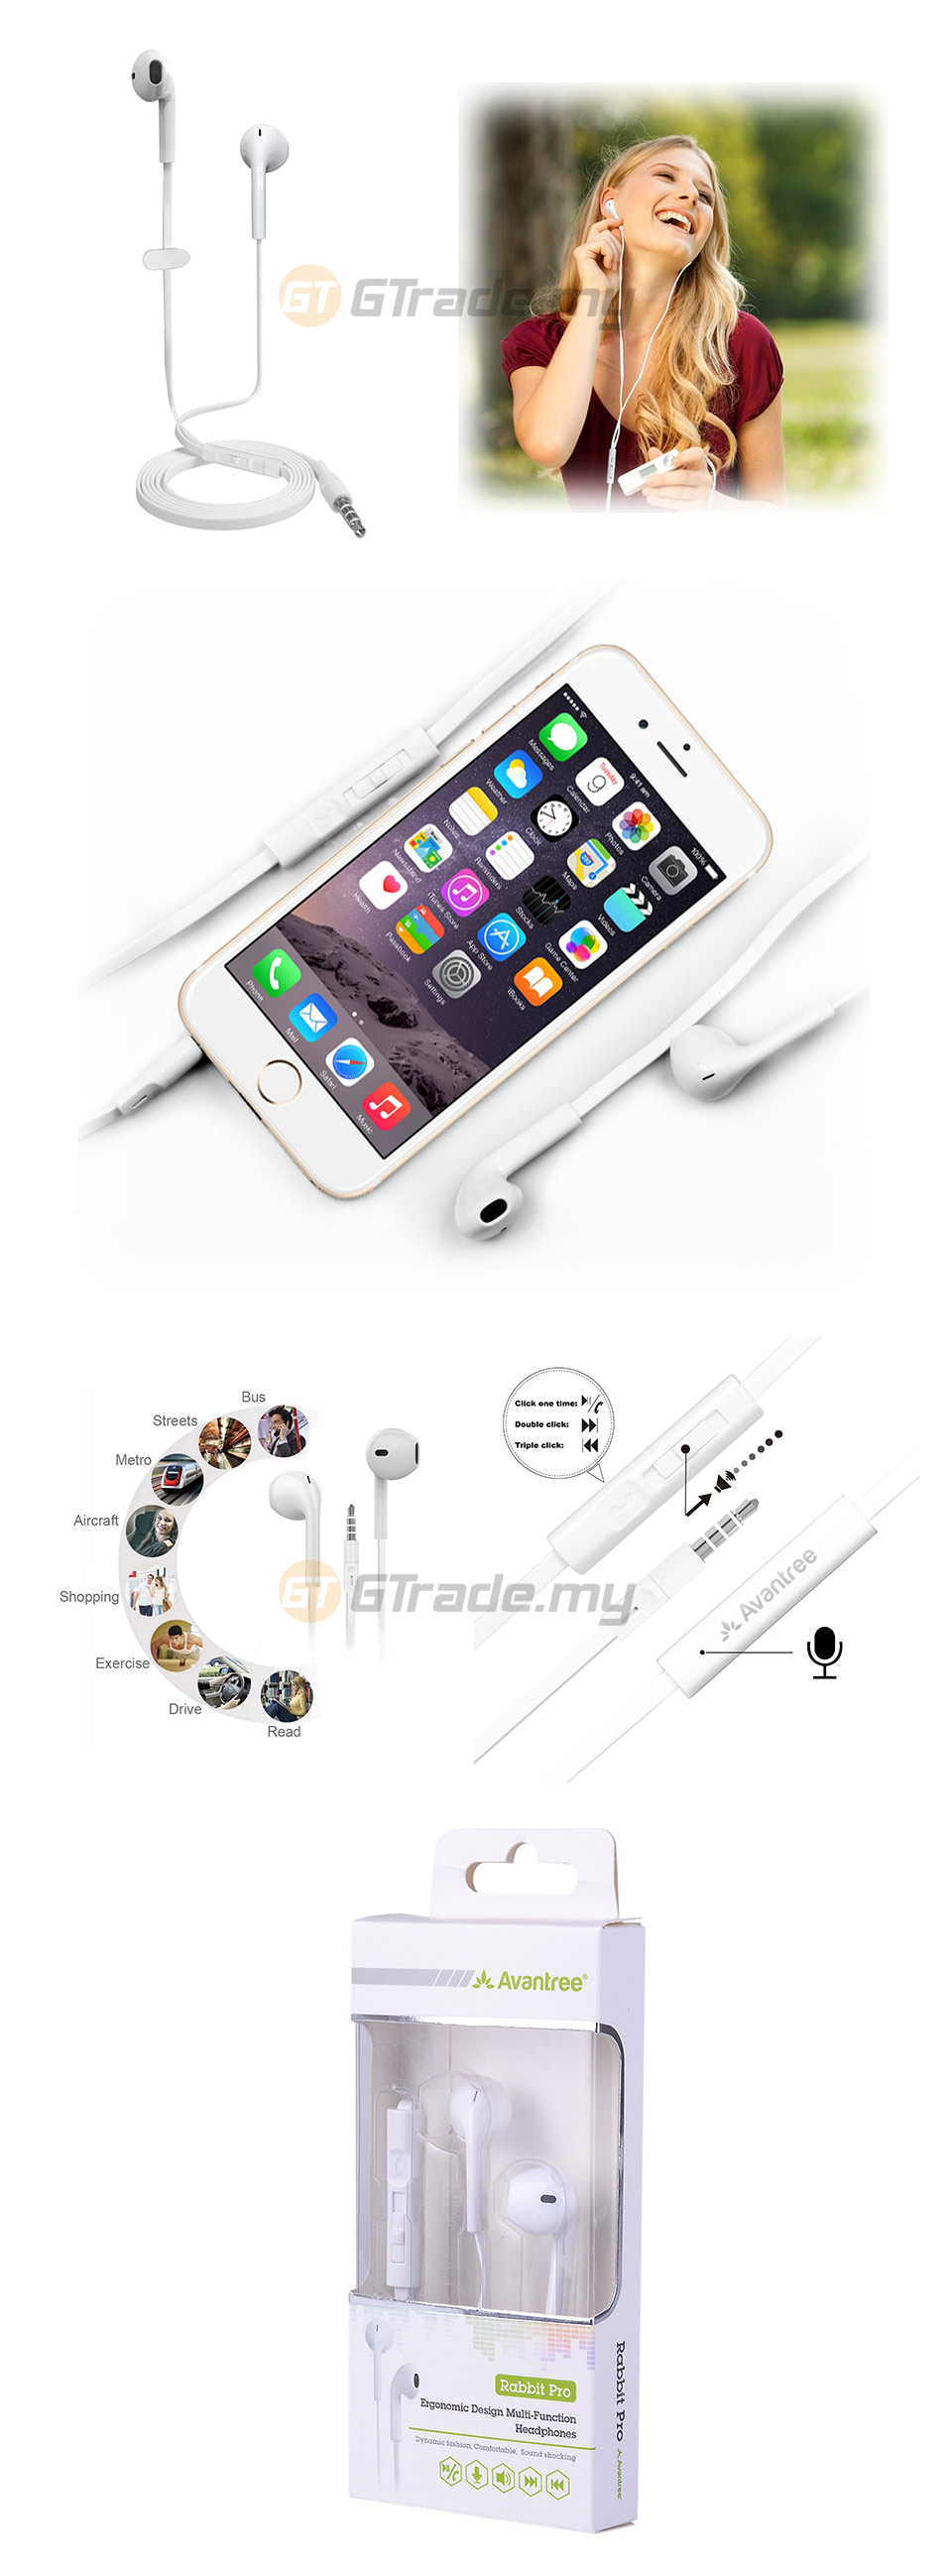 avantree-rabbit-pro-stereo-multi-function-headphones-with-mic-iphone